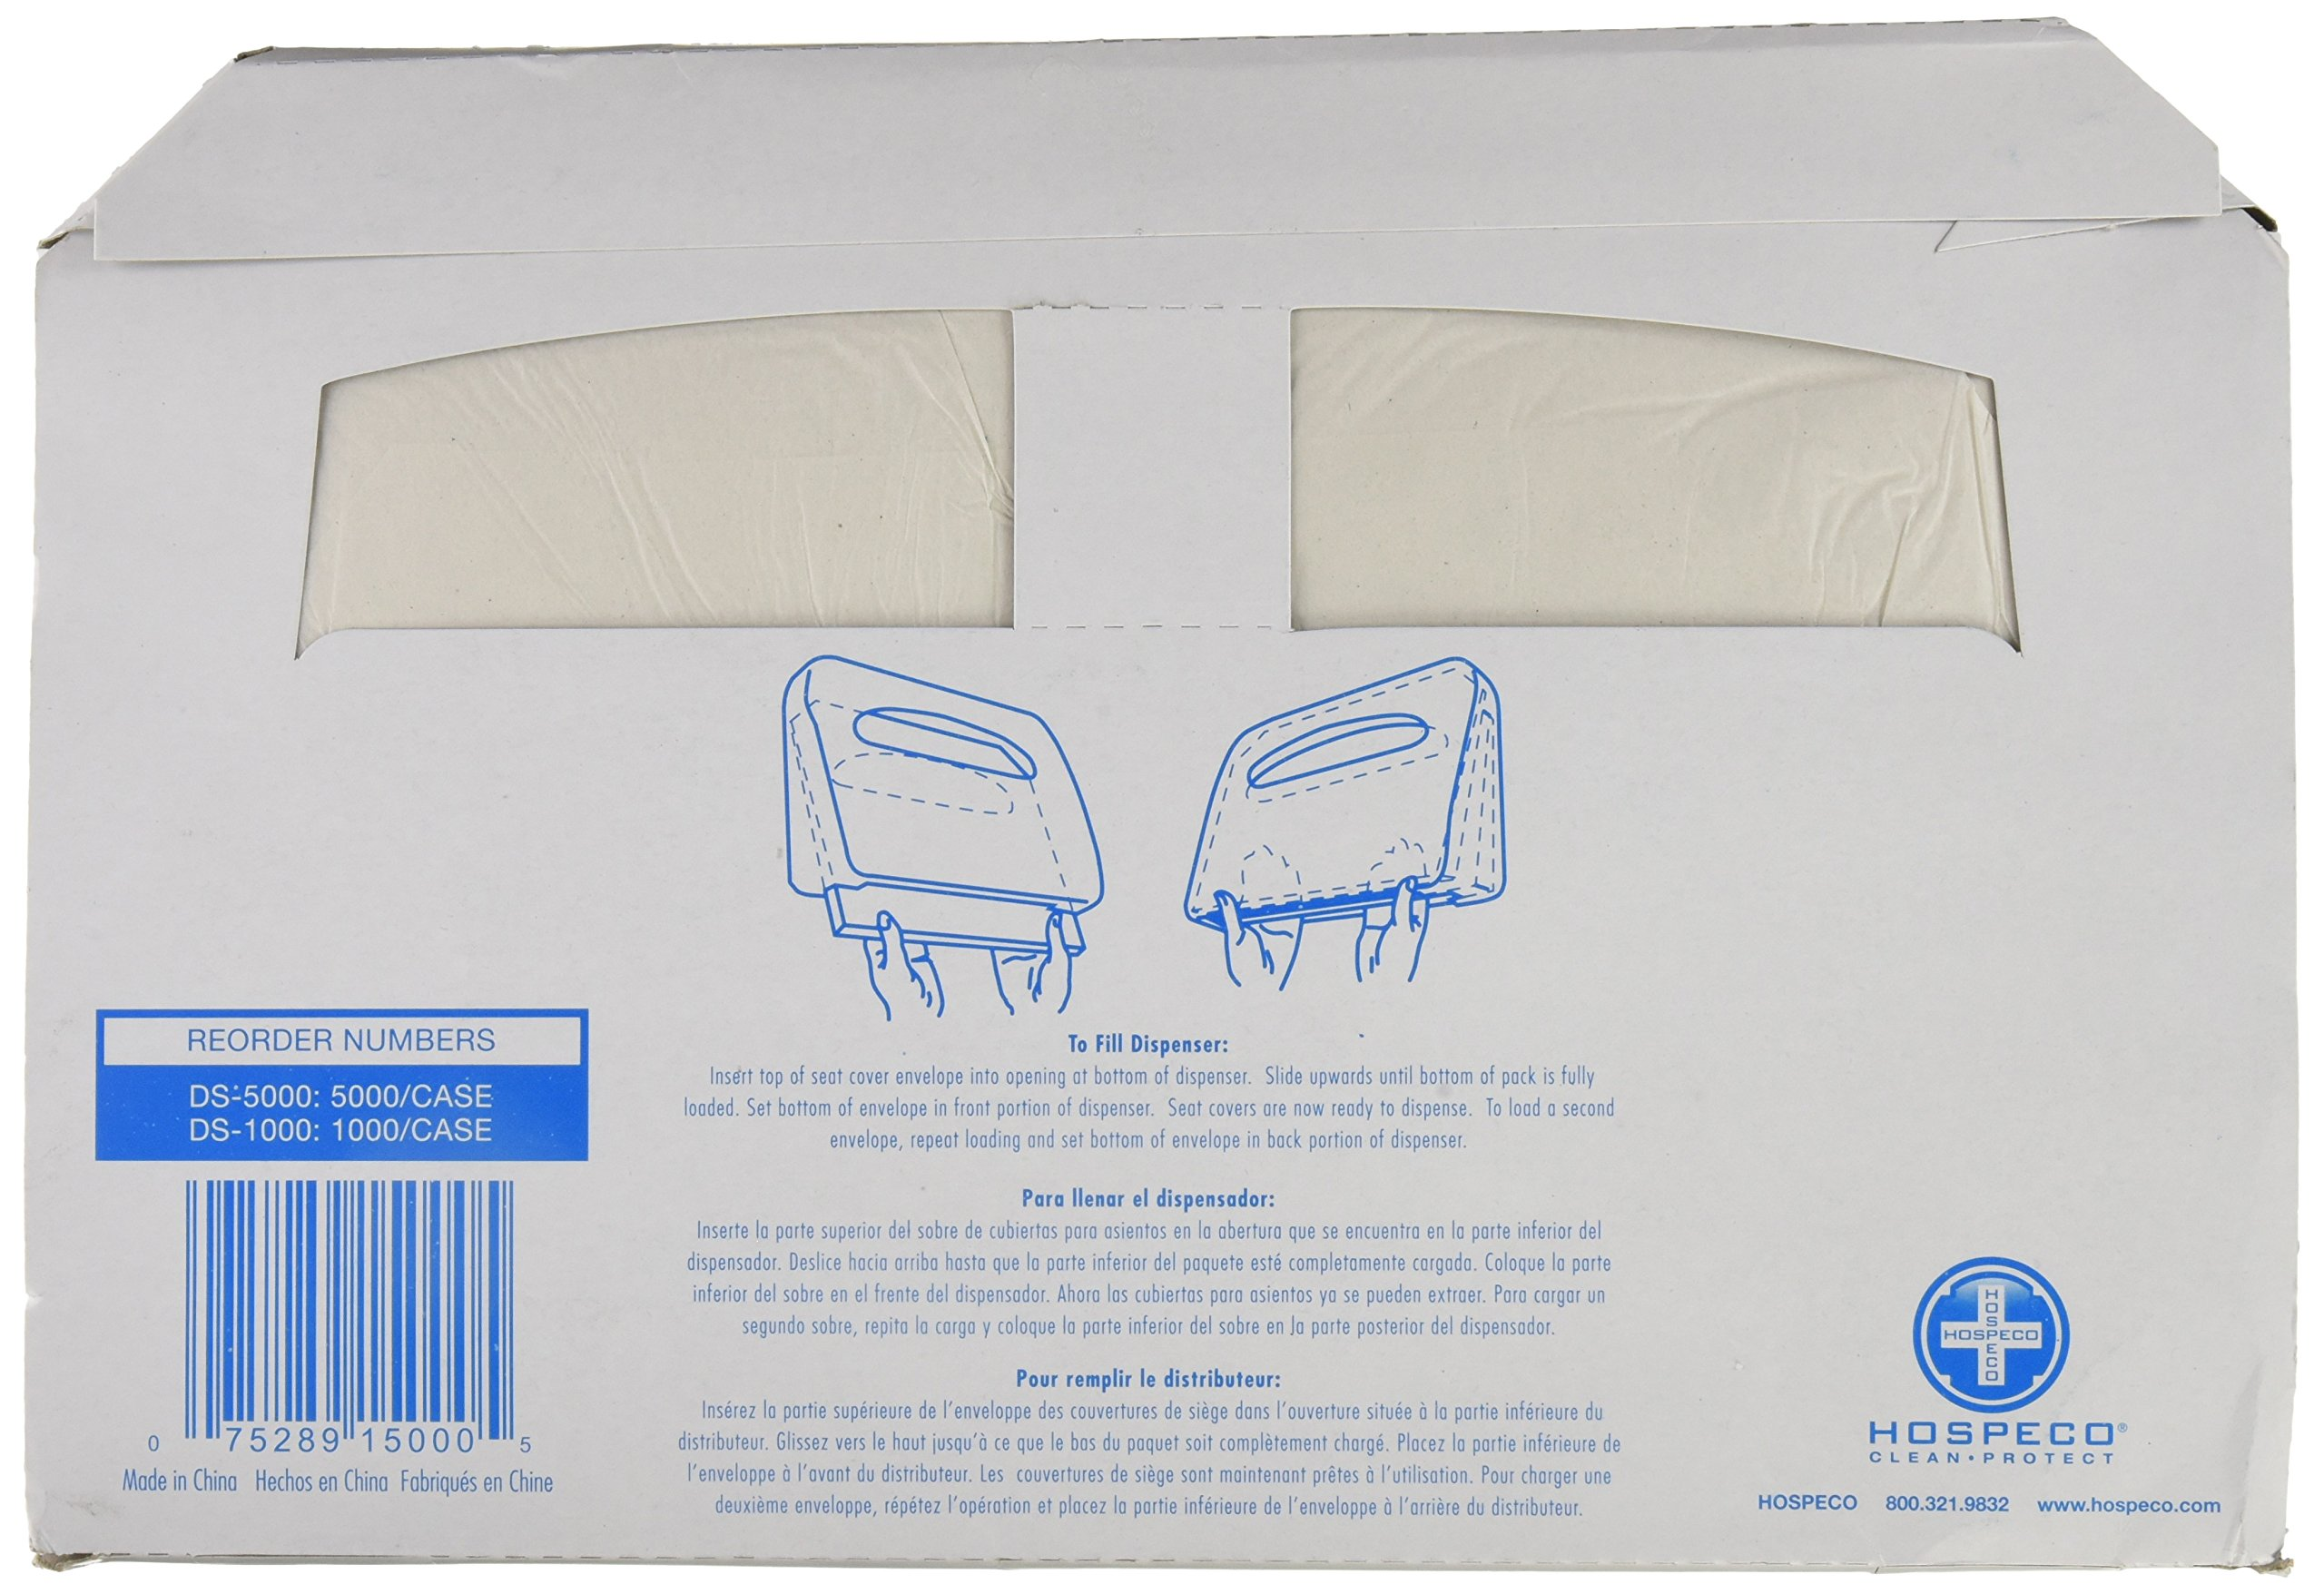 Discreet Seat DS-1000 Half-Fold Toilet Seat Covers, White (4 Pack of 250) by Hospeco